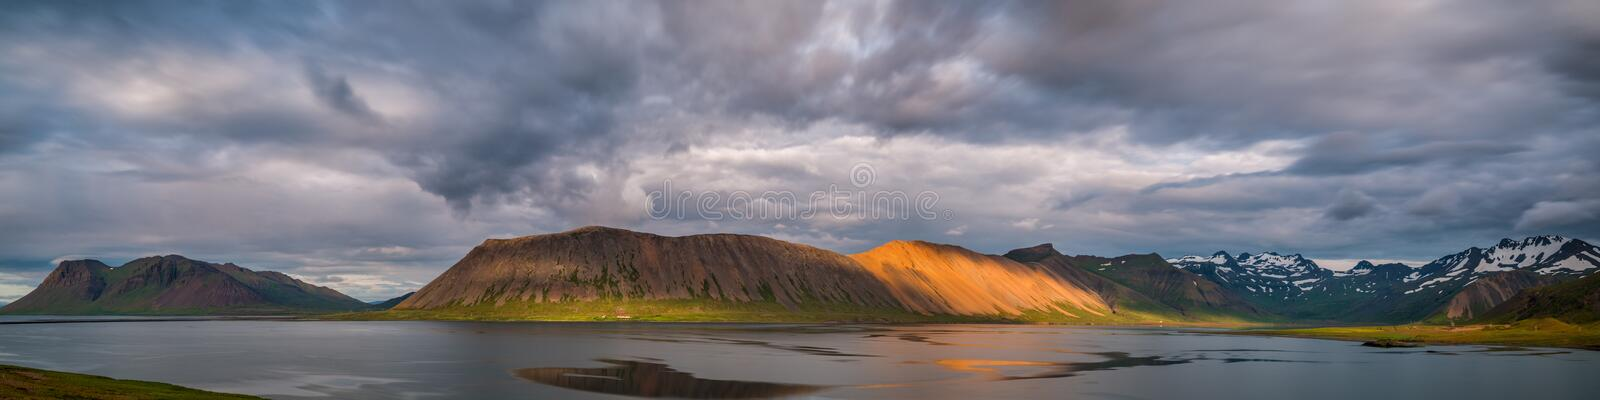 Panorama of a Mountain Range in Iceland. Scenic view of mountains in Iceland stock images